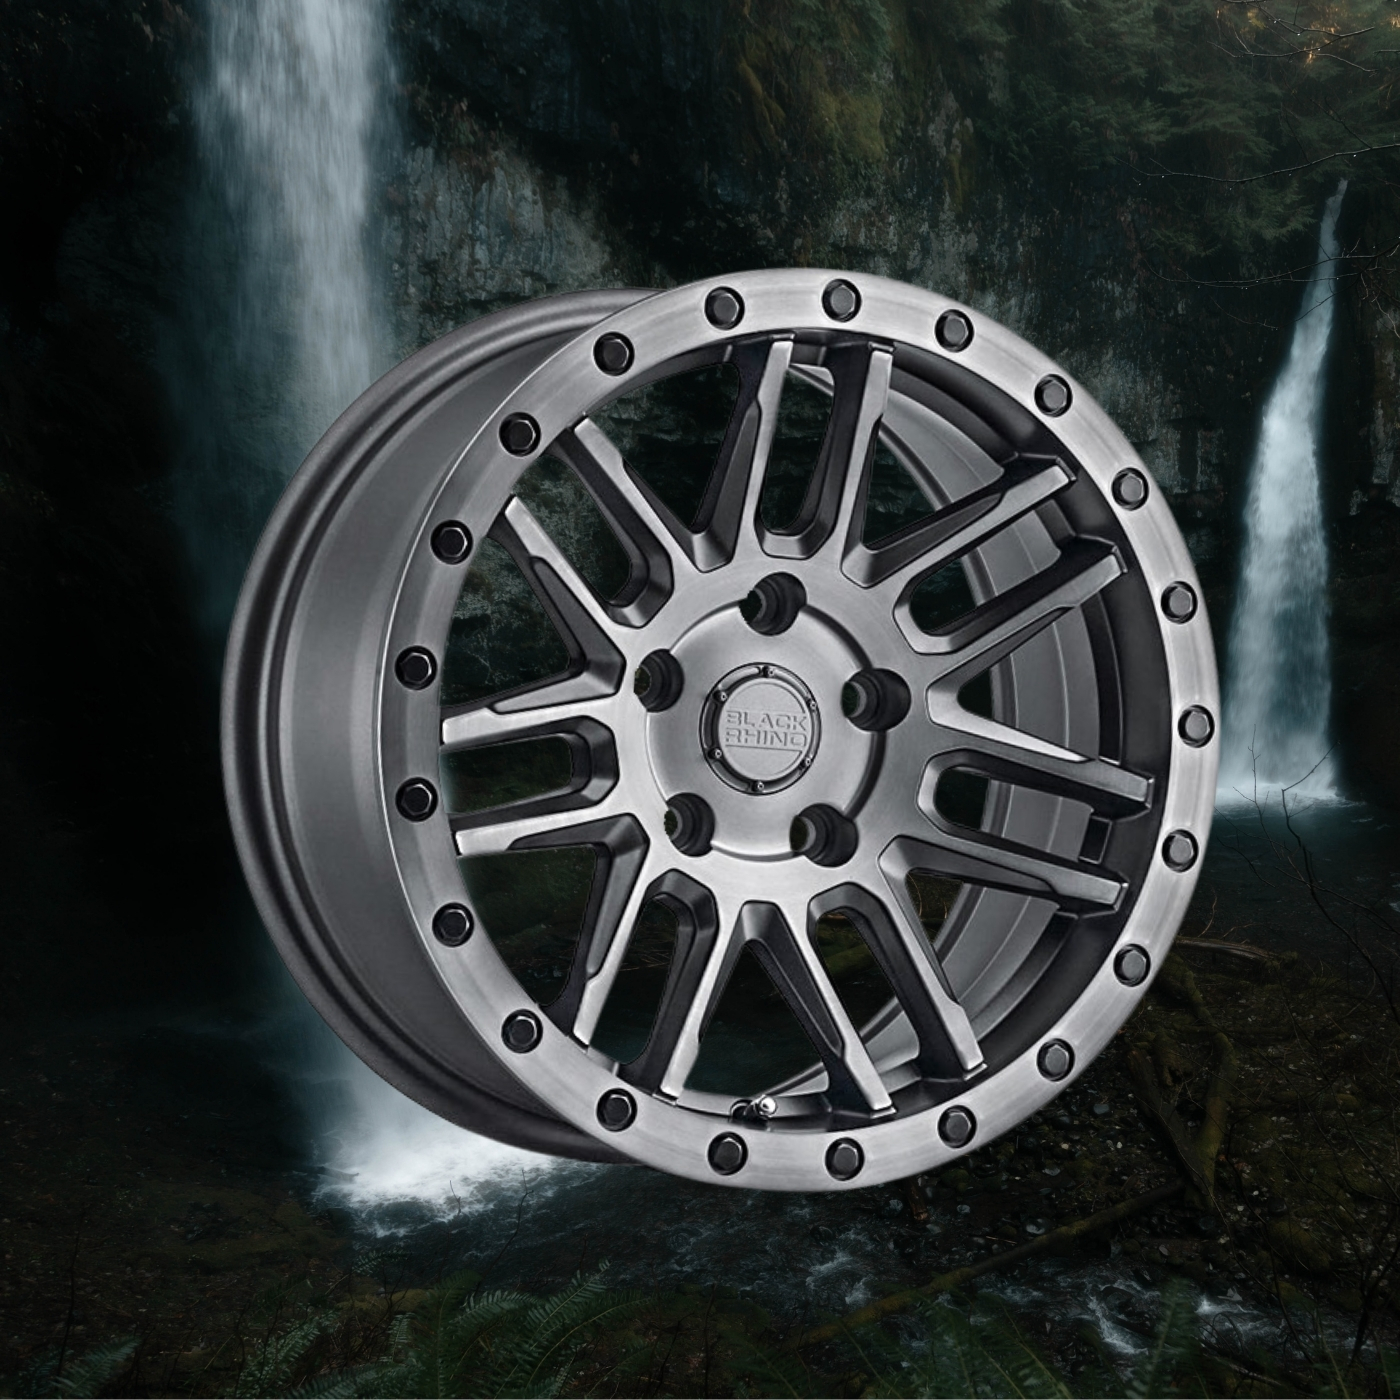 Black rhino Arches wheel for lifted subarus for off road use